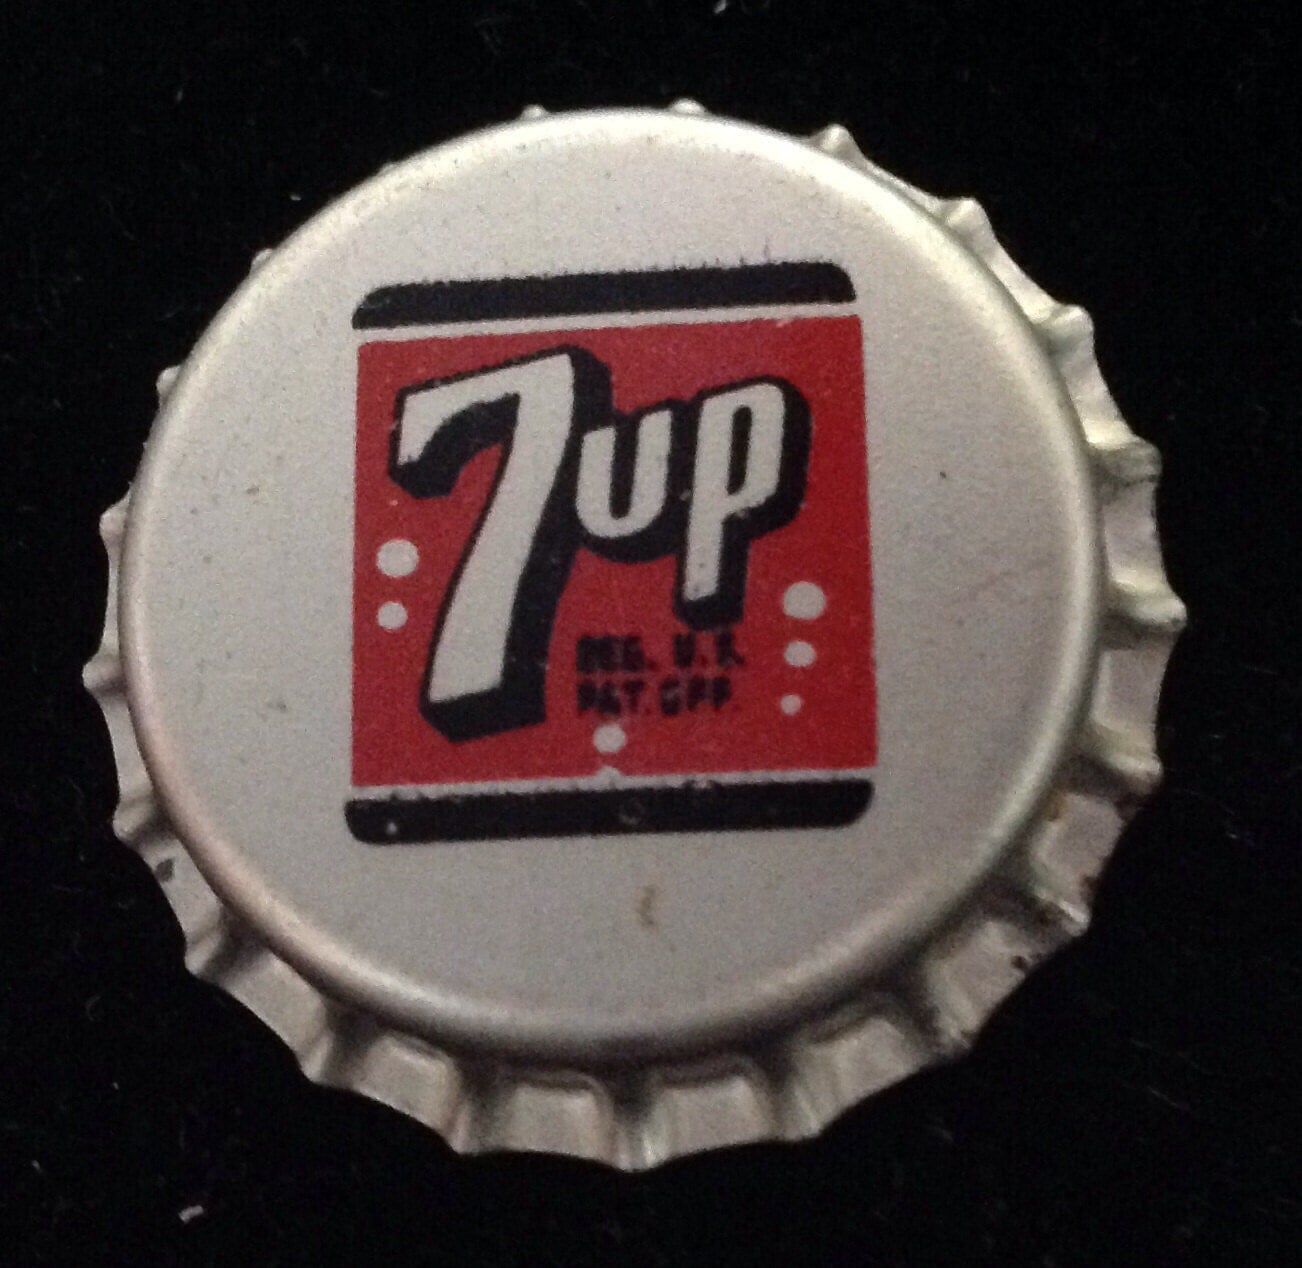 7up soda bottle cap cork sale by txsodajerks on etsy for Soda caps for sale